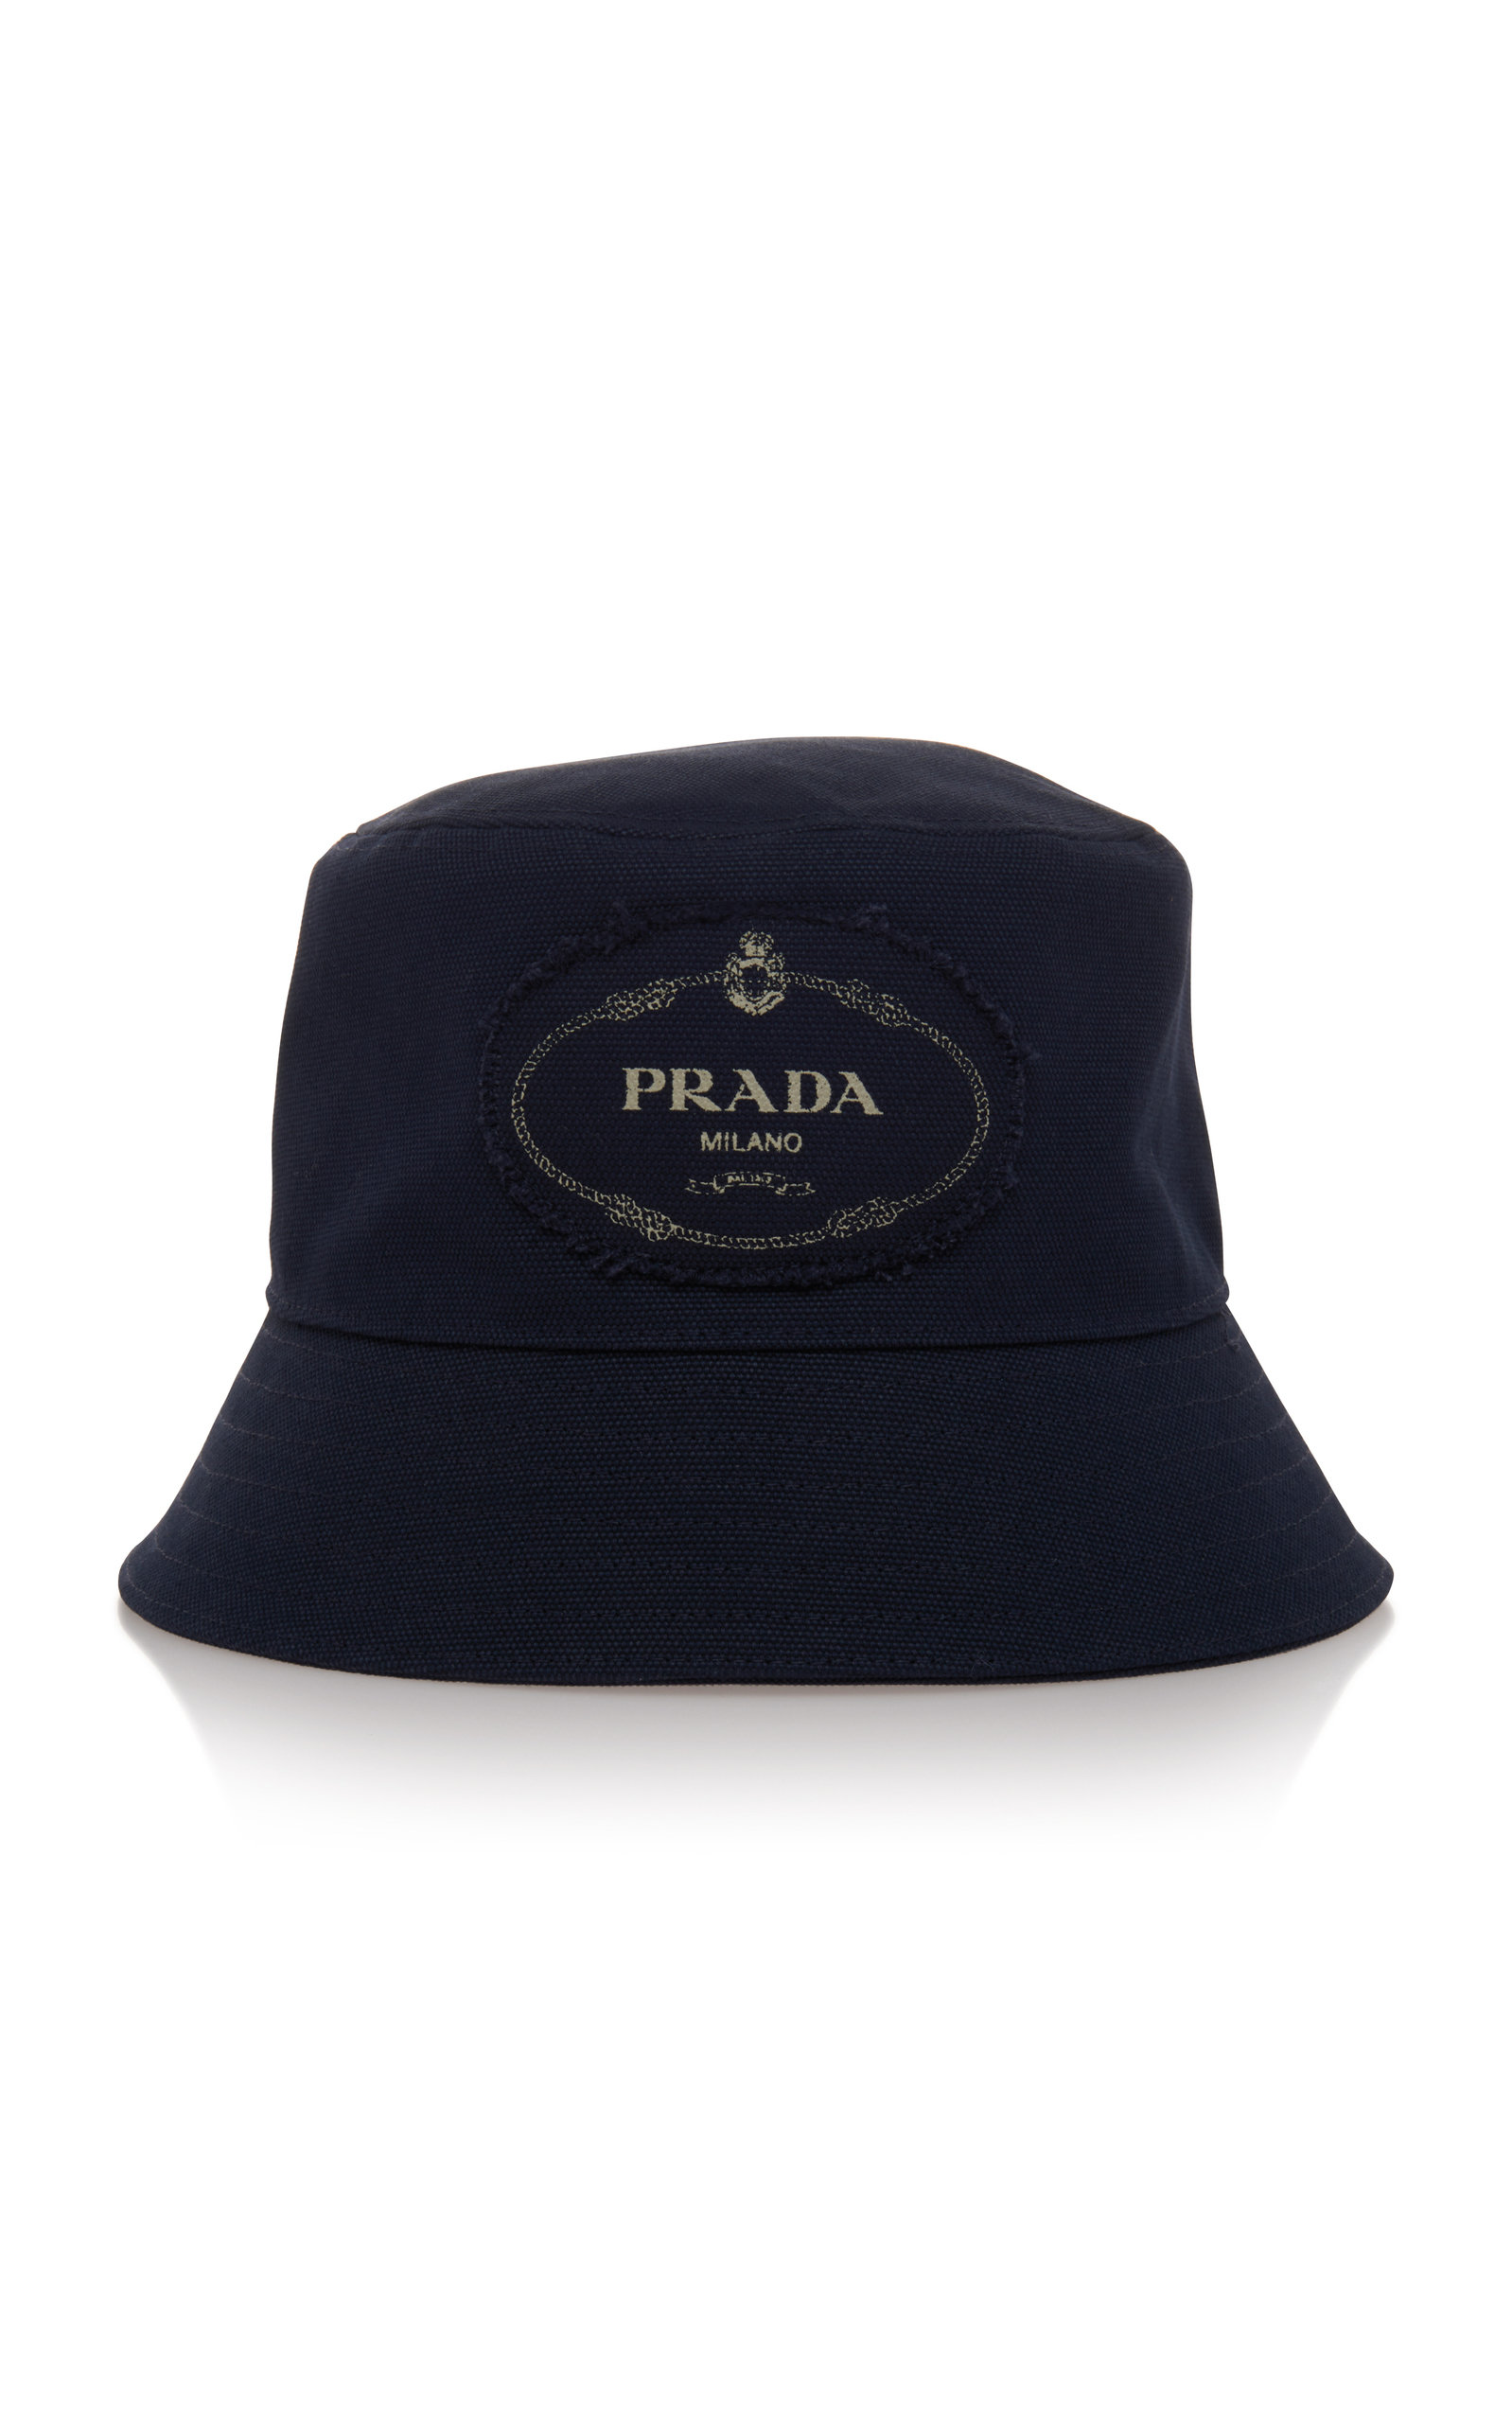 168c8bcc4a188 PradaSavoy Navy Canvas Bucket Hat. CLOSE. Loading